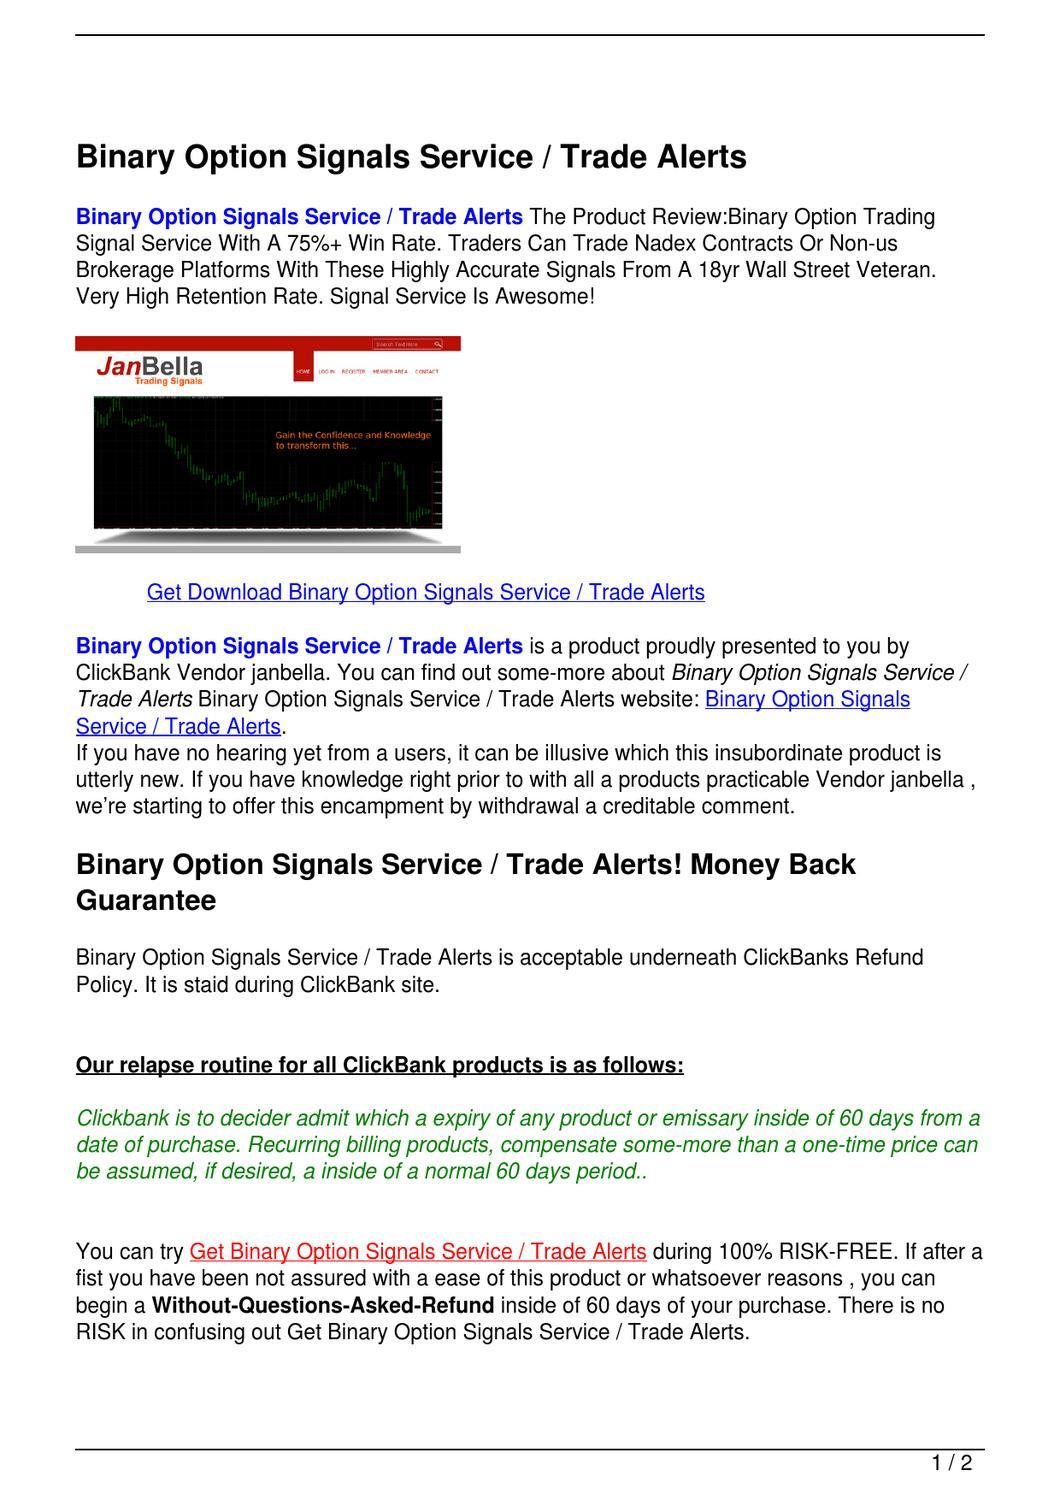 Binary options trading signal service